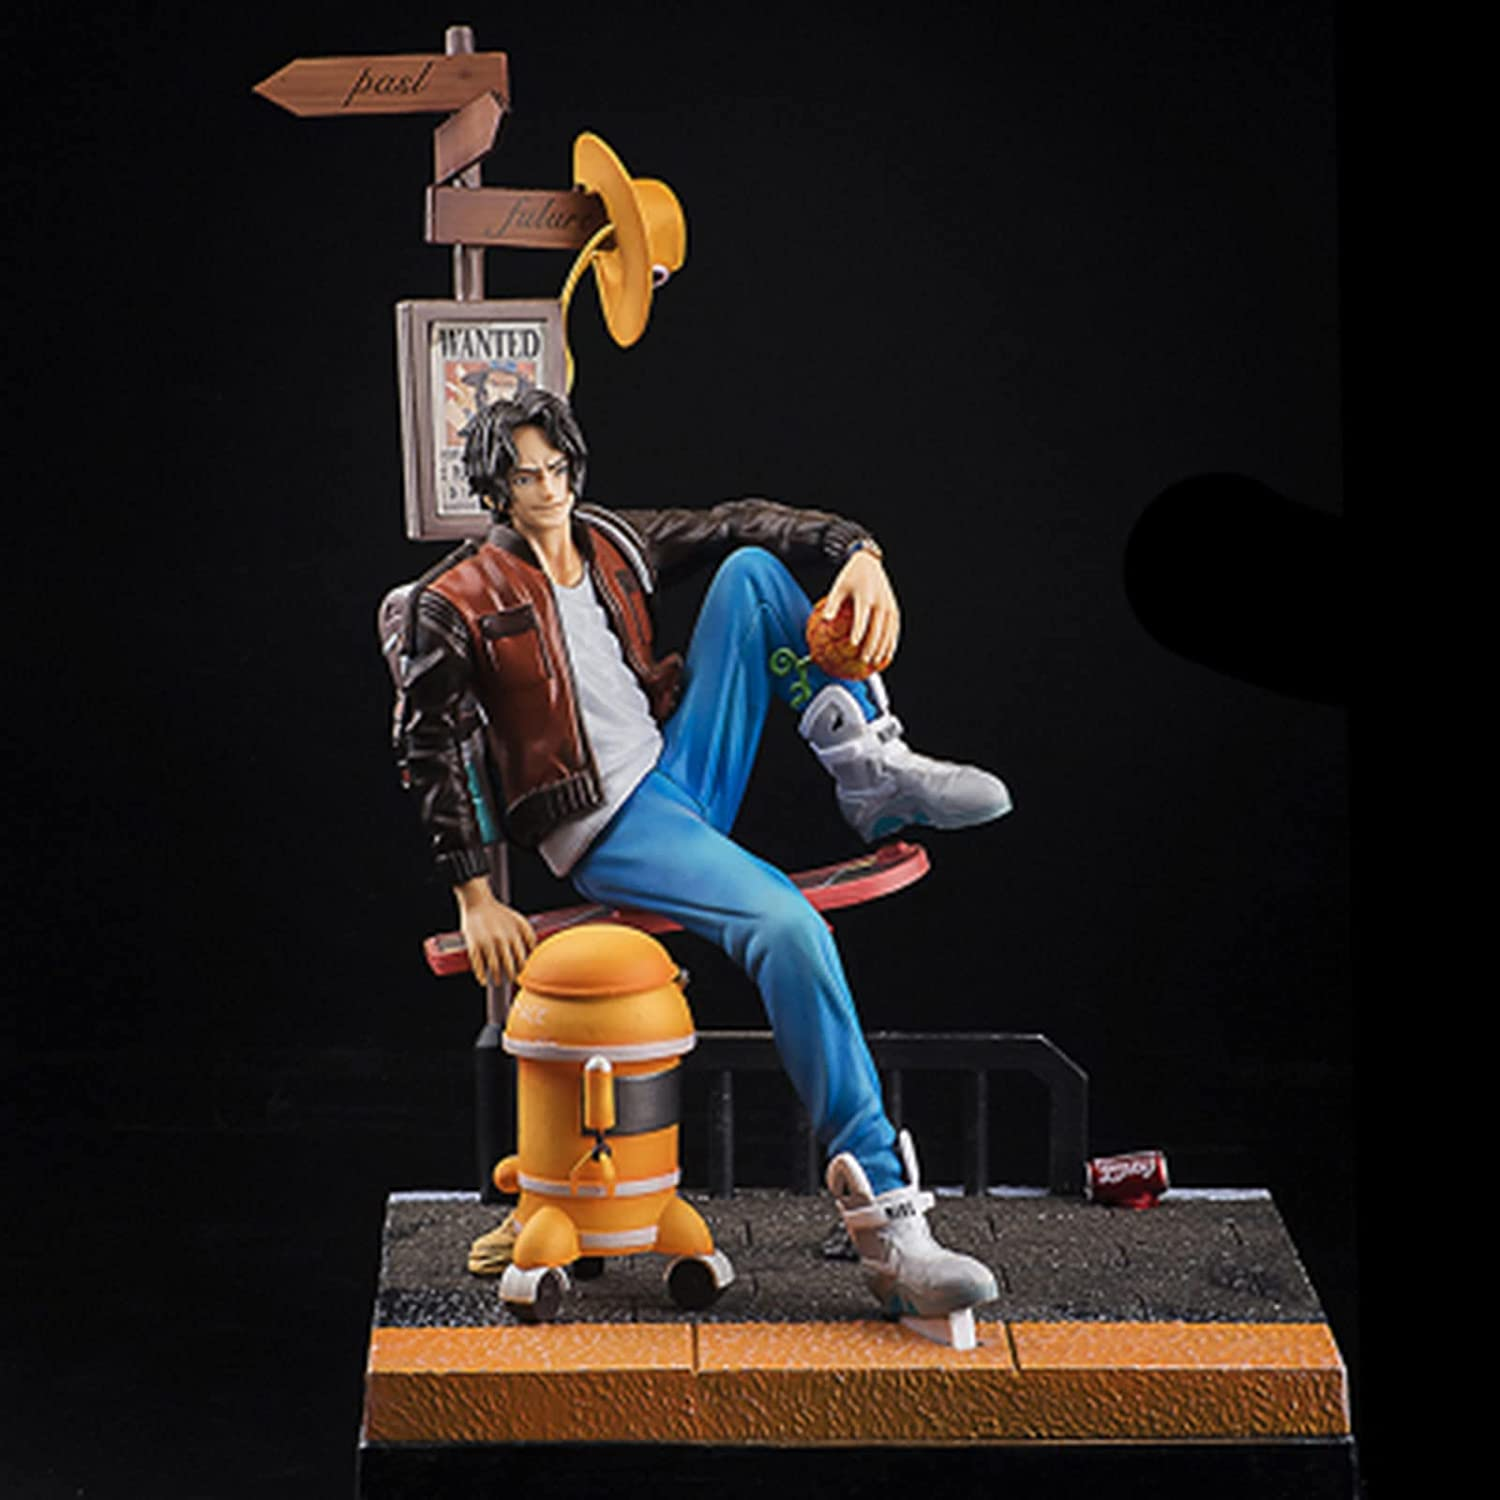 LVLIANG One Piece Portgas D Over item handling All items free shipping Ace F Anime Hero Figure Action